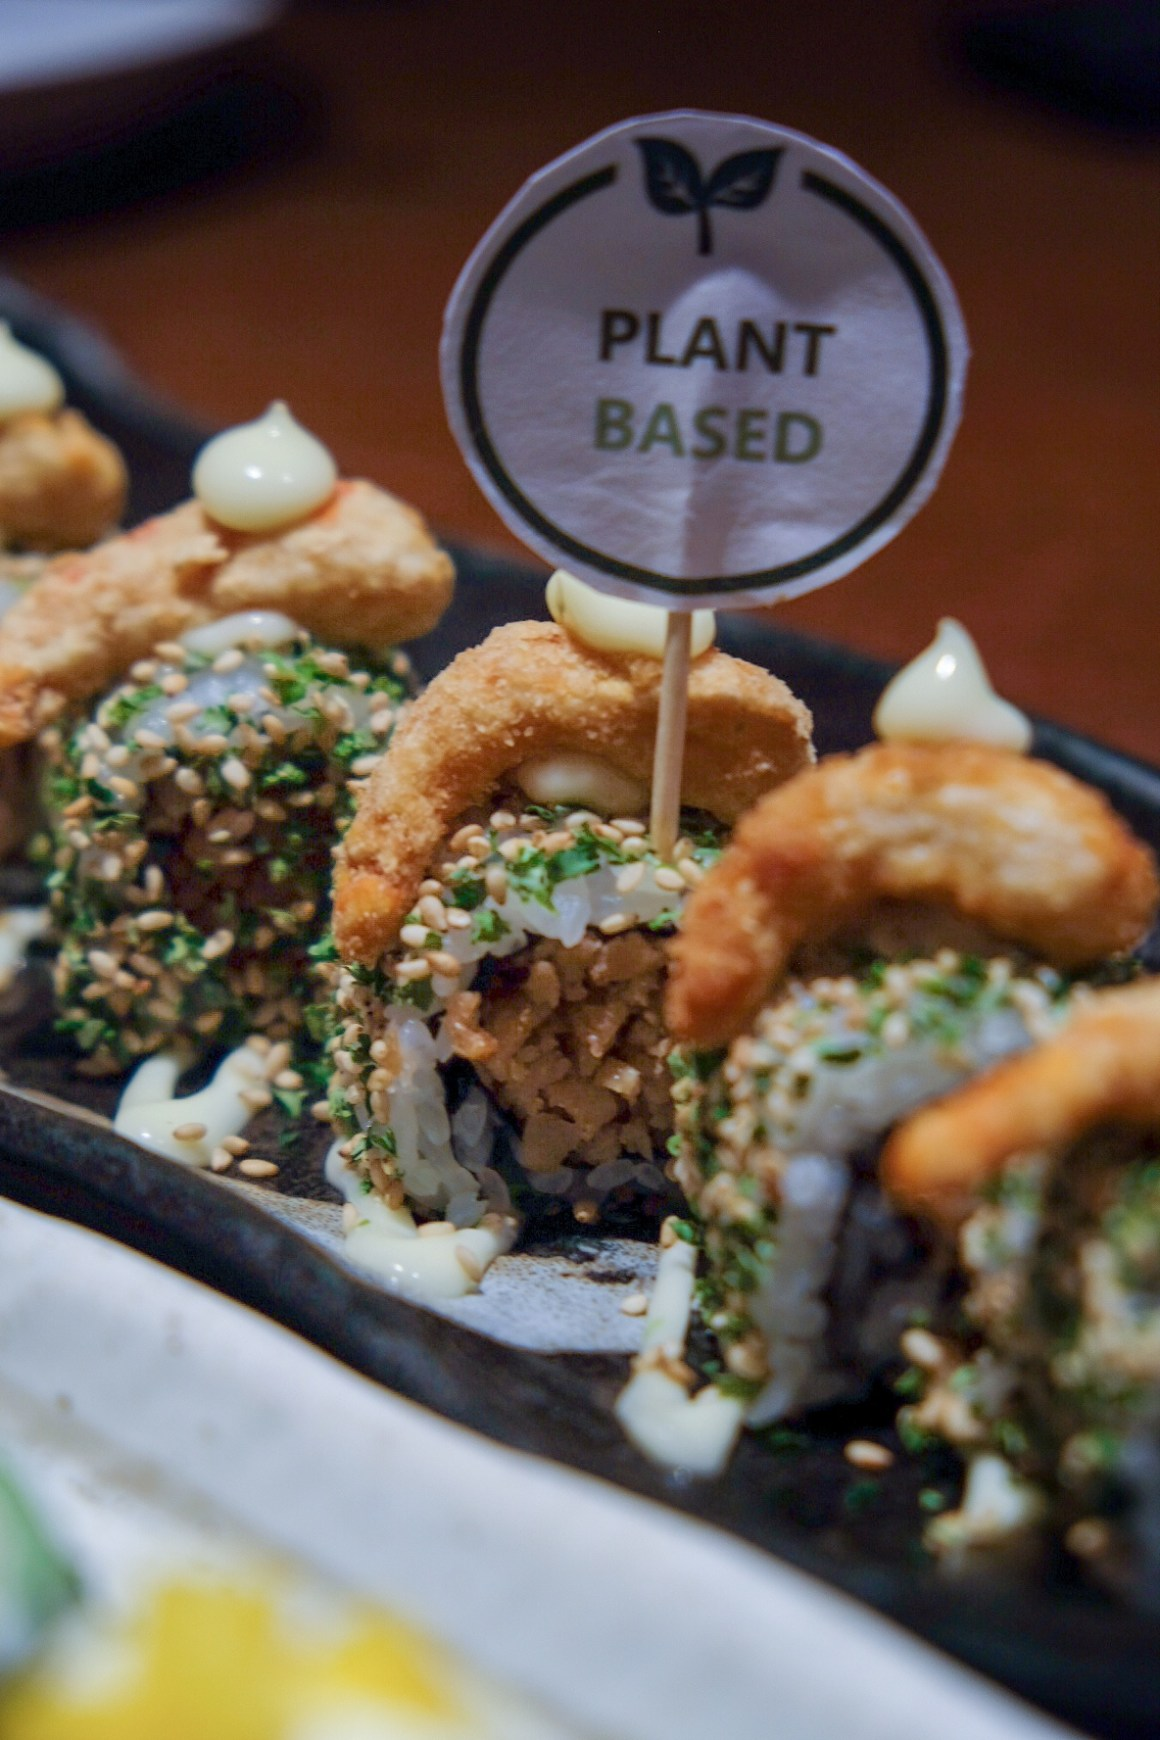 Sushi Tei First Plant-based Menu - Shokubutsu Ebi Roll ($9.80)